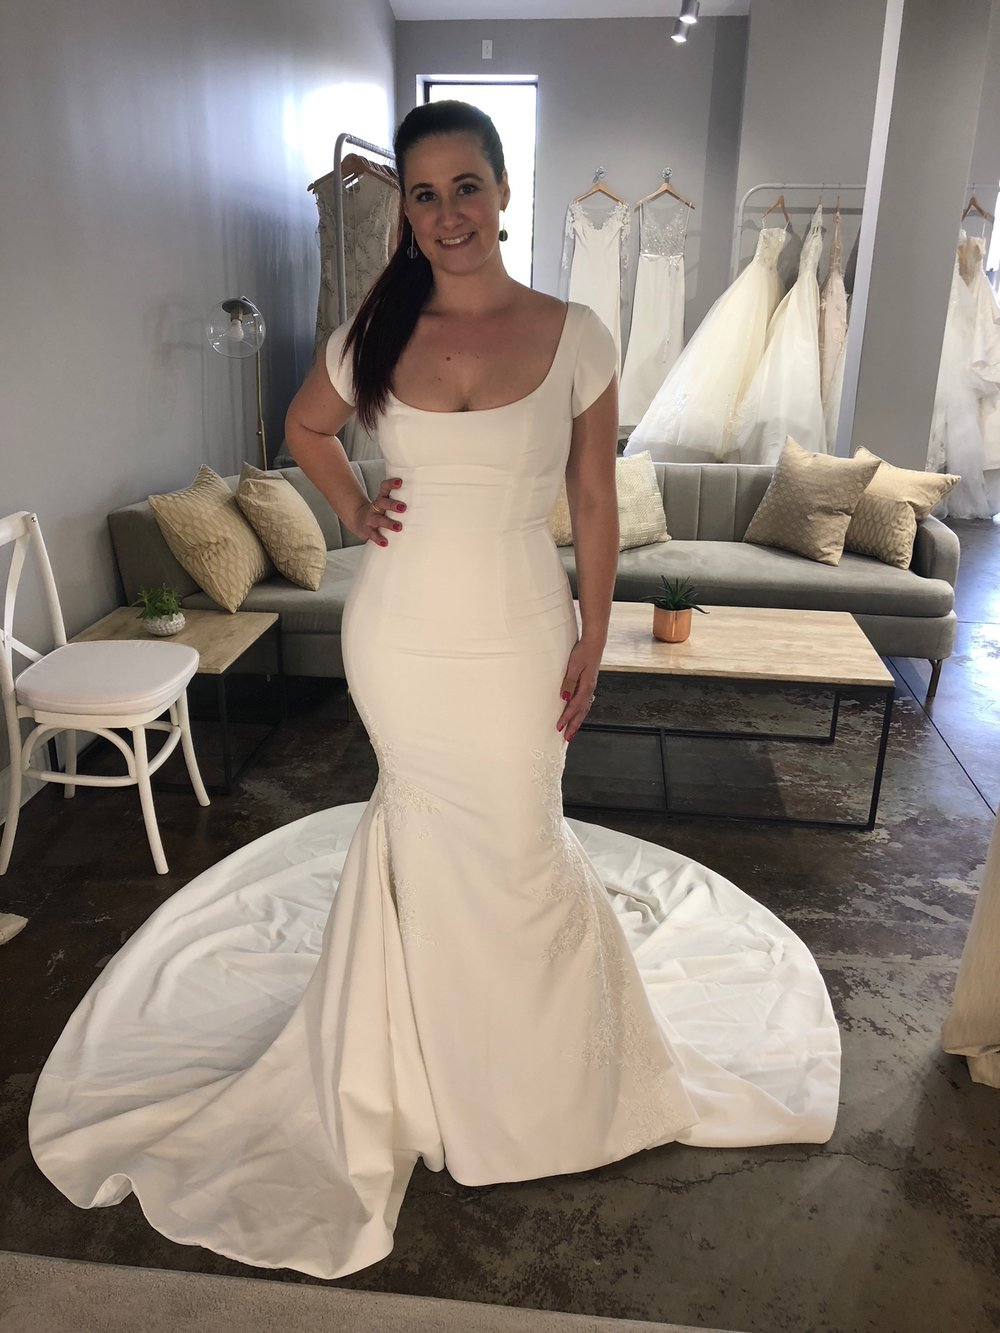 For a tailored version of Meghan Markle's Wedding Dress - Carter by Ines Di Santo